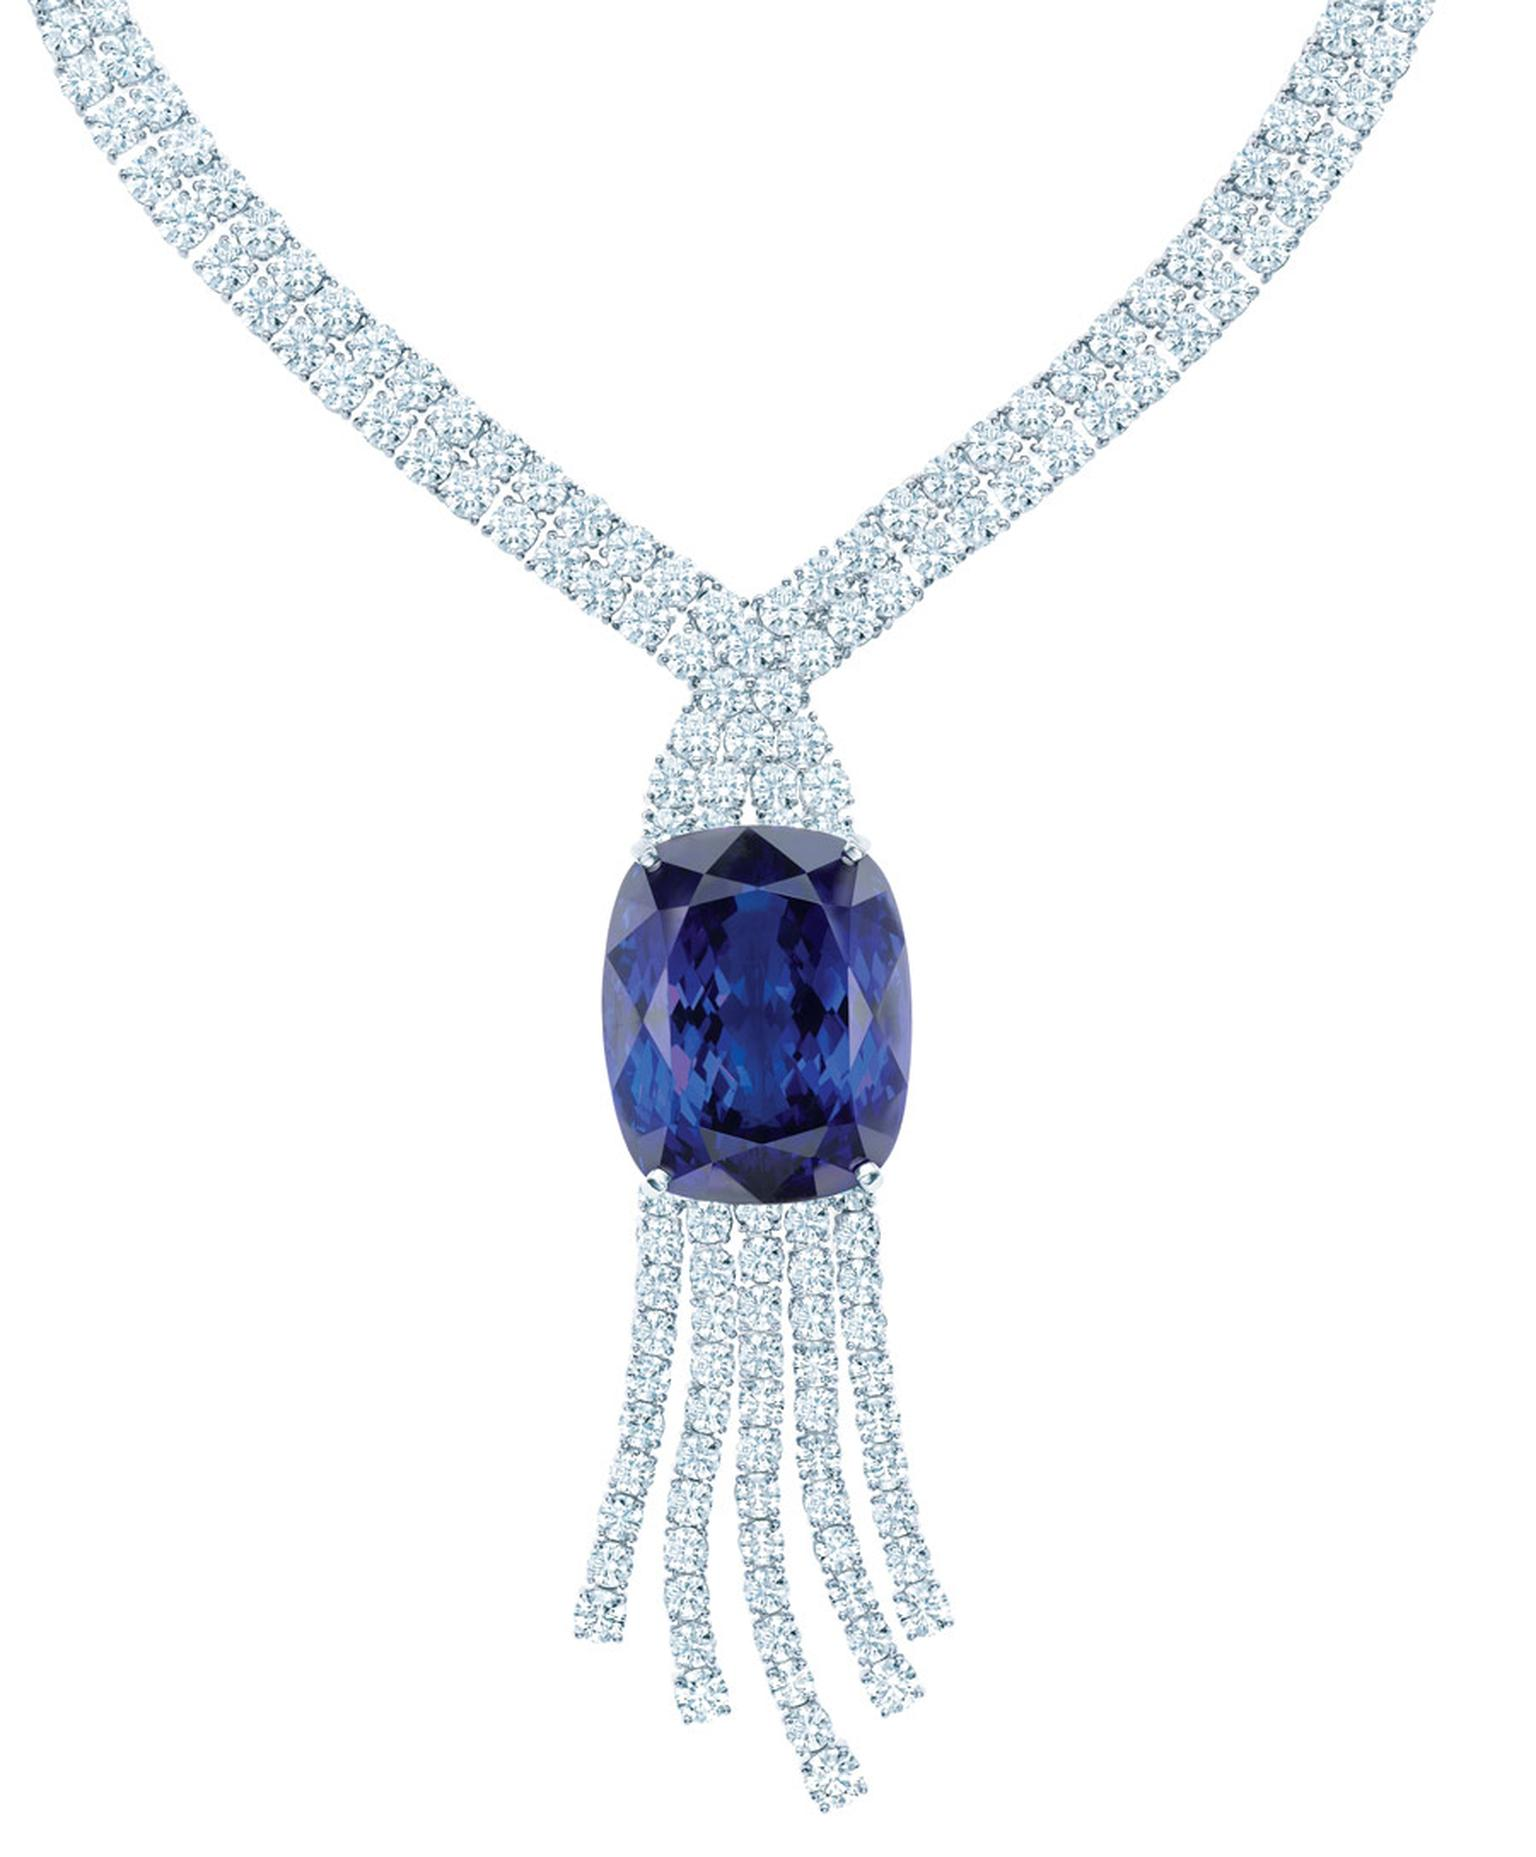 Tiffany Anniversary platinum necklace, set with over 175ct of tanzanites, complemented by a cascade of round brilliant diamonds.